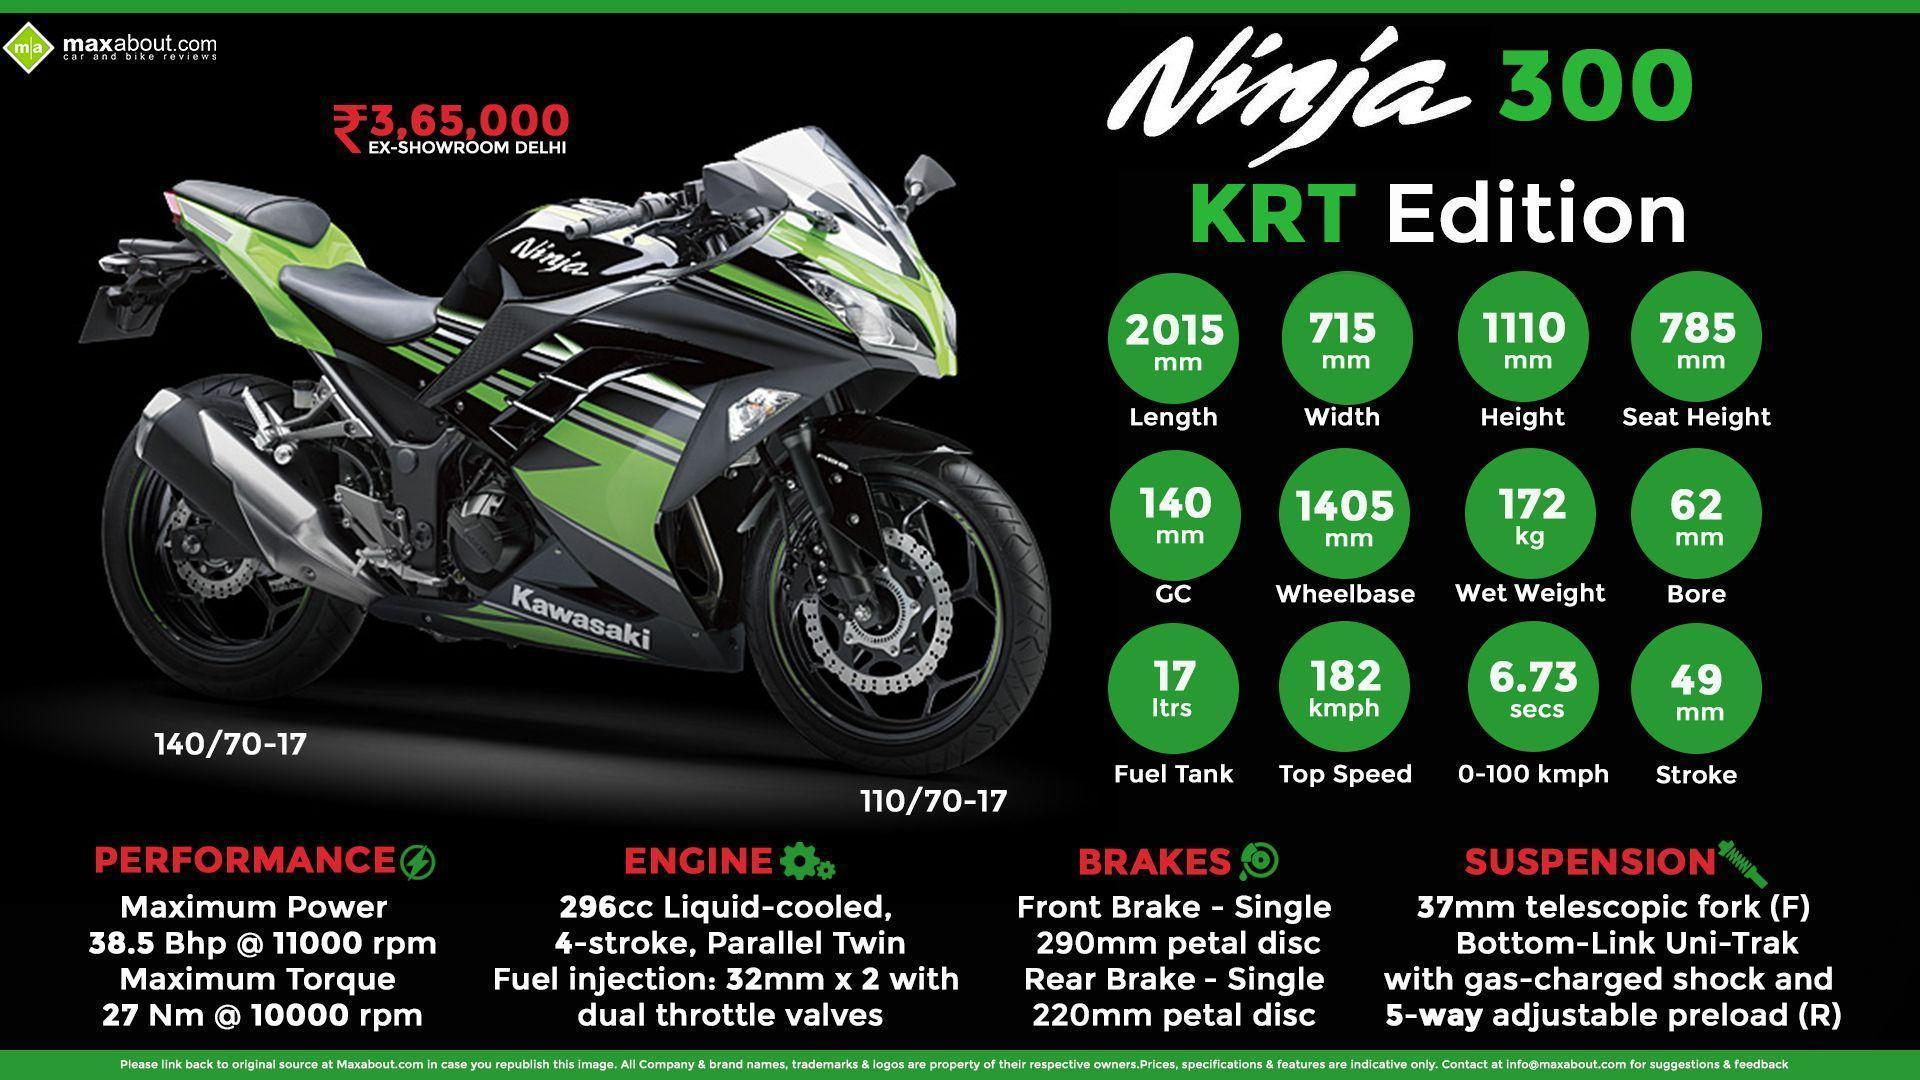 Fast Facts About Kawasaki Ninja 300 KRT Edition